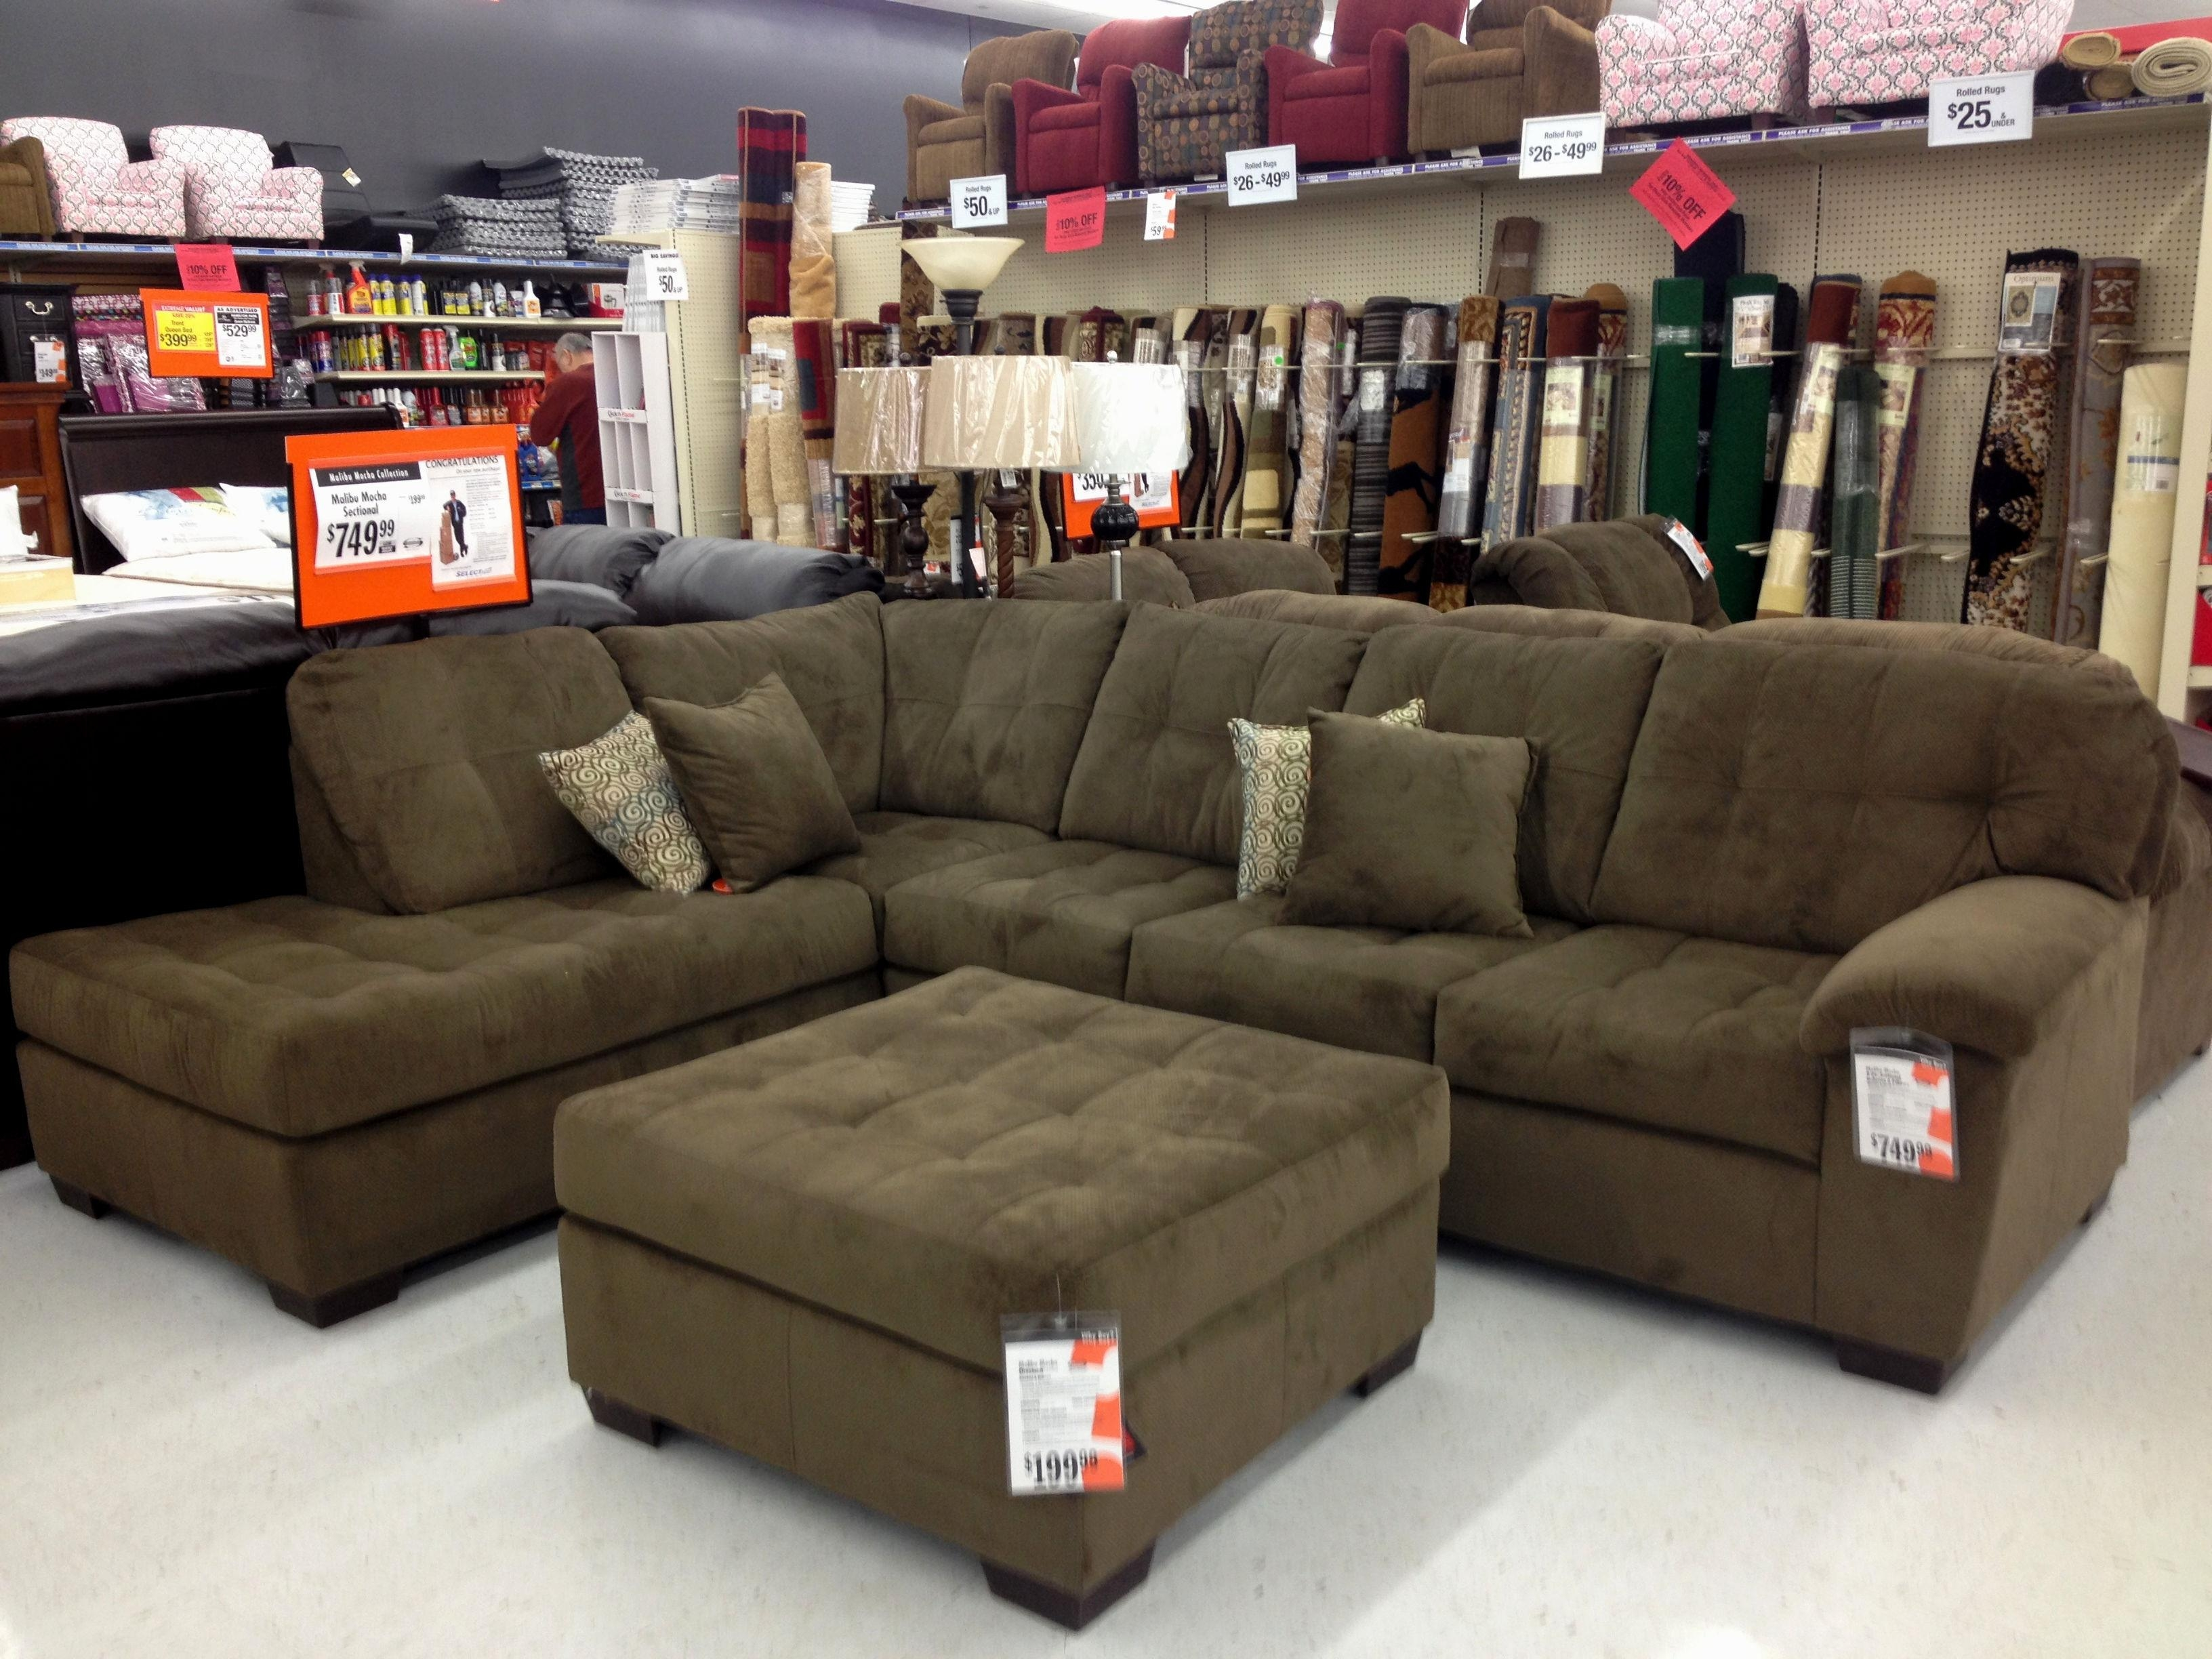 Sectional Sofas Big Lots 2 | Best Home Decor Ideas Intended For Big Lots Sofas (Image 10 of 20)